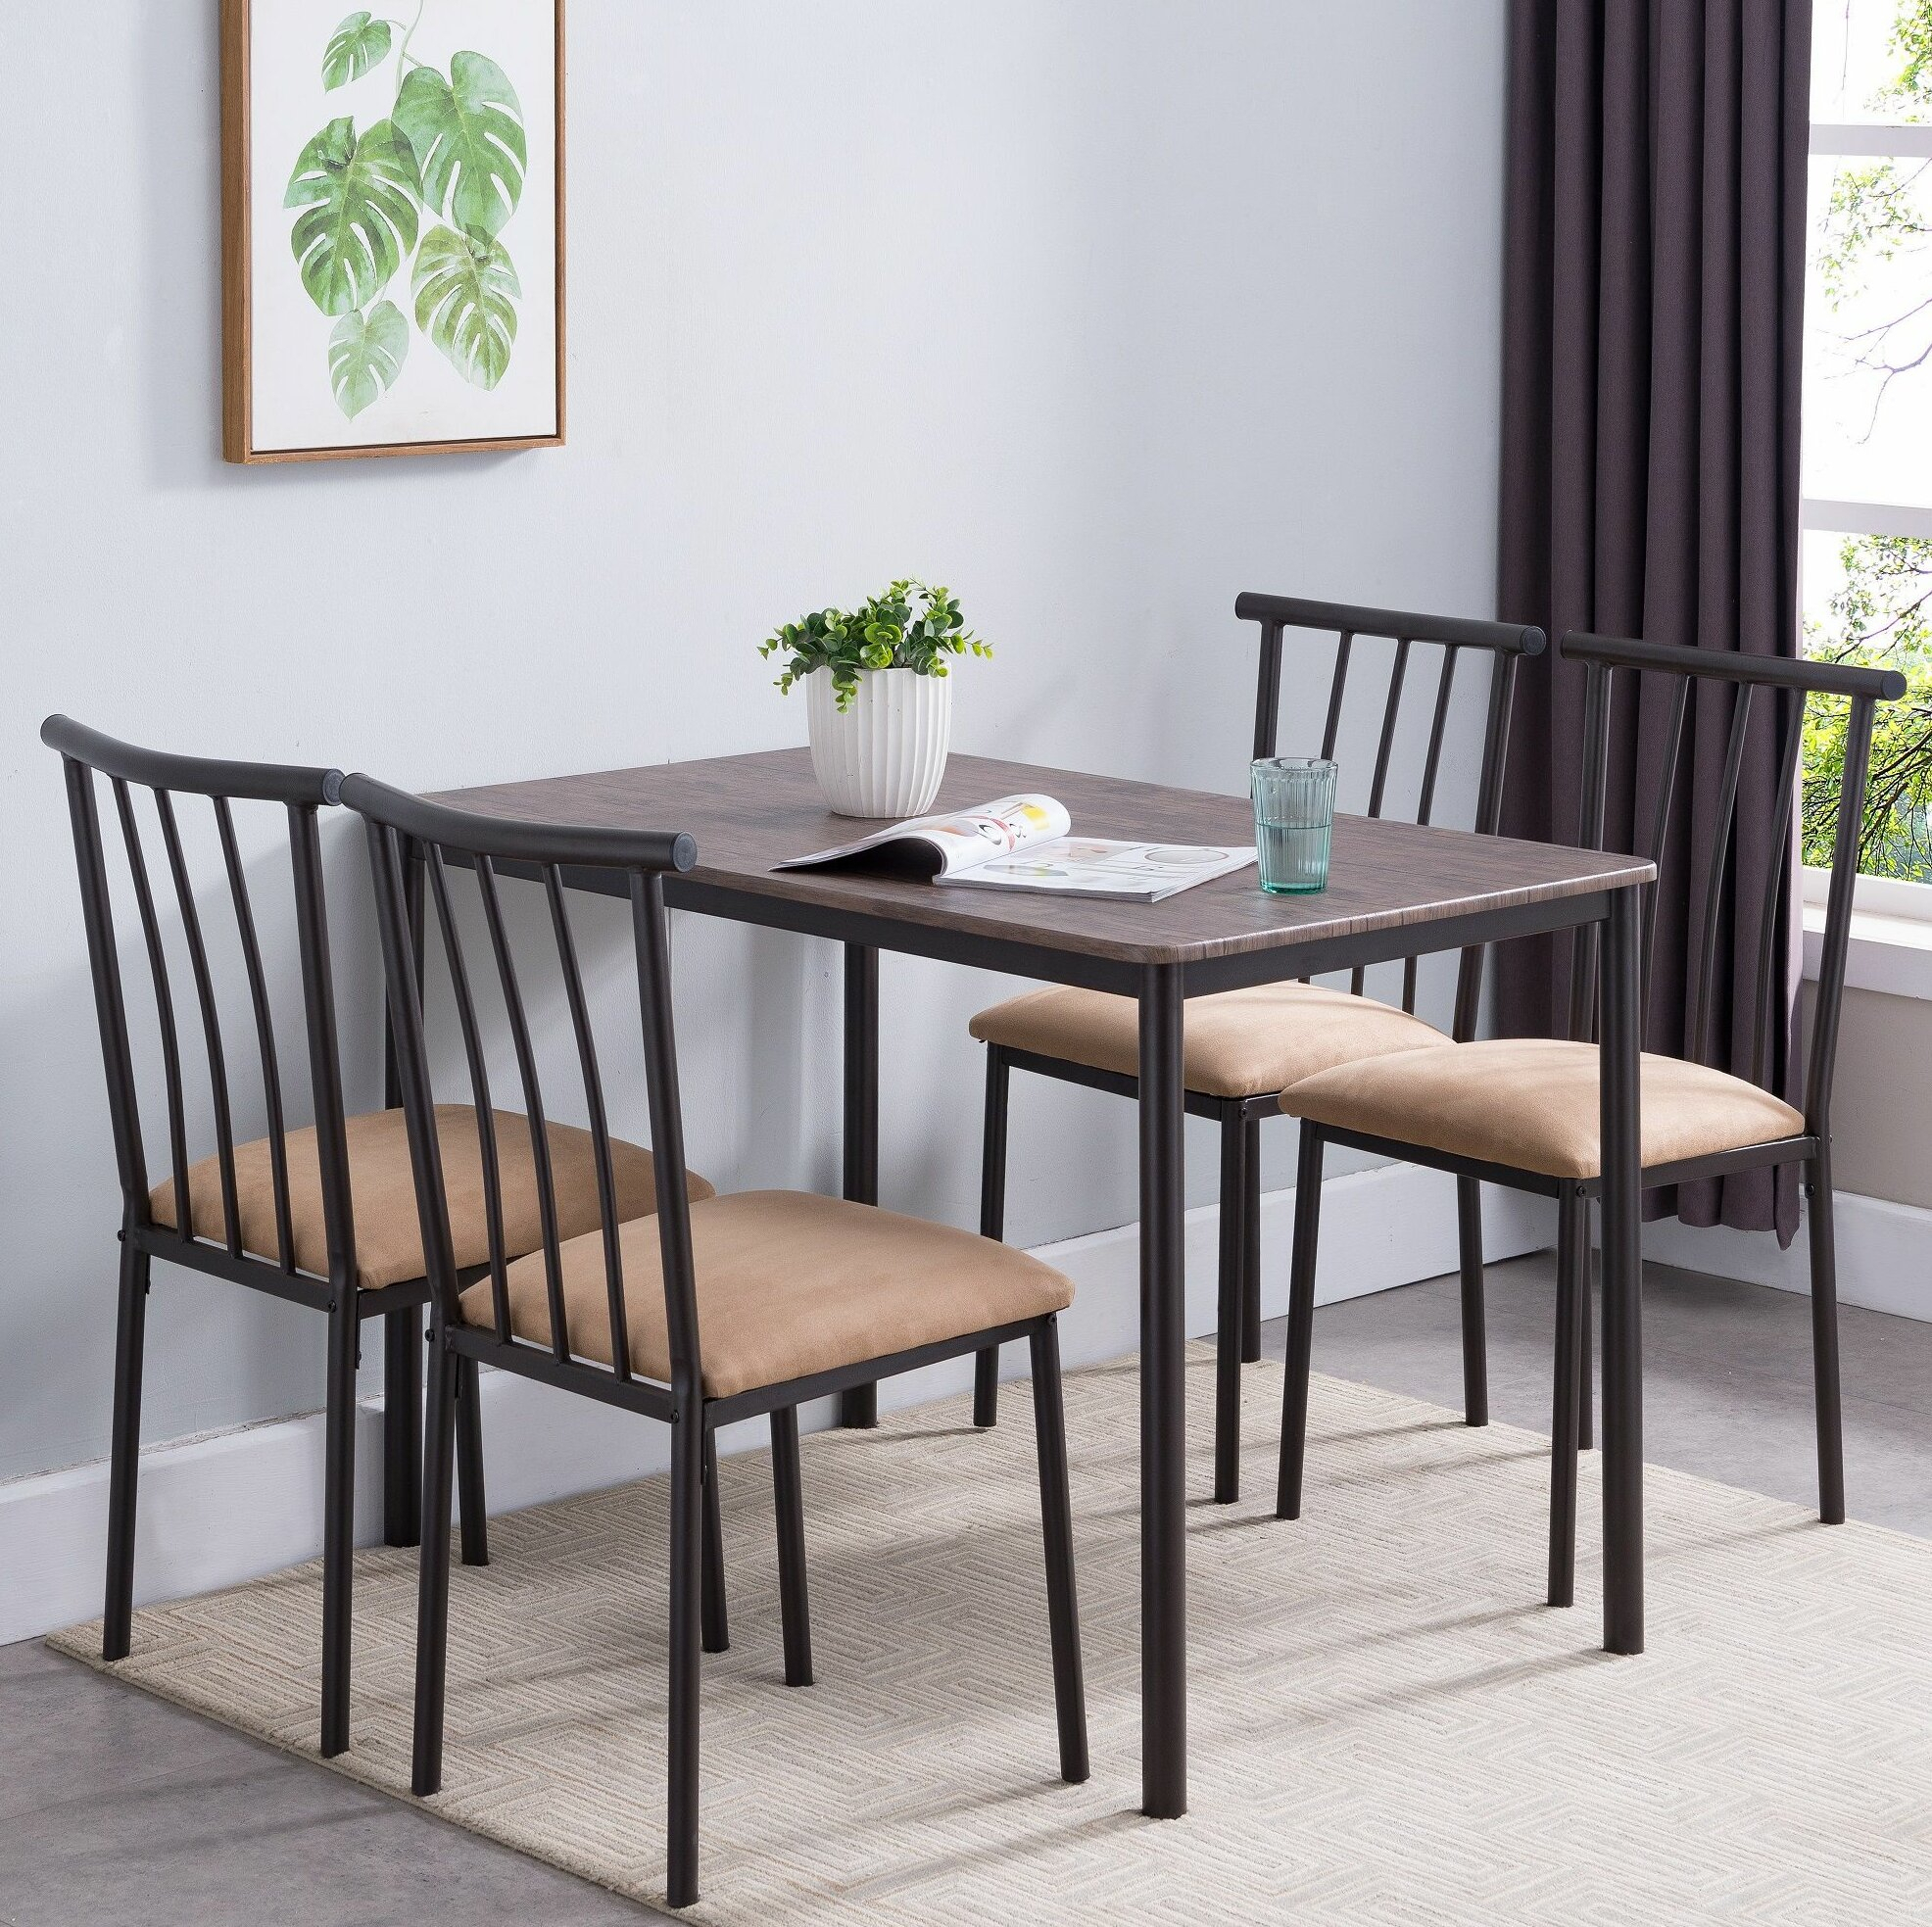 Stclair 5 Piece Dining Set Inside Best And Newest Casiano 5 Piece Dining Sets (View 10 of 20)